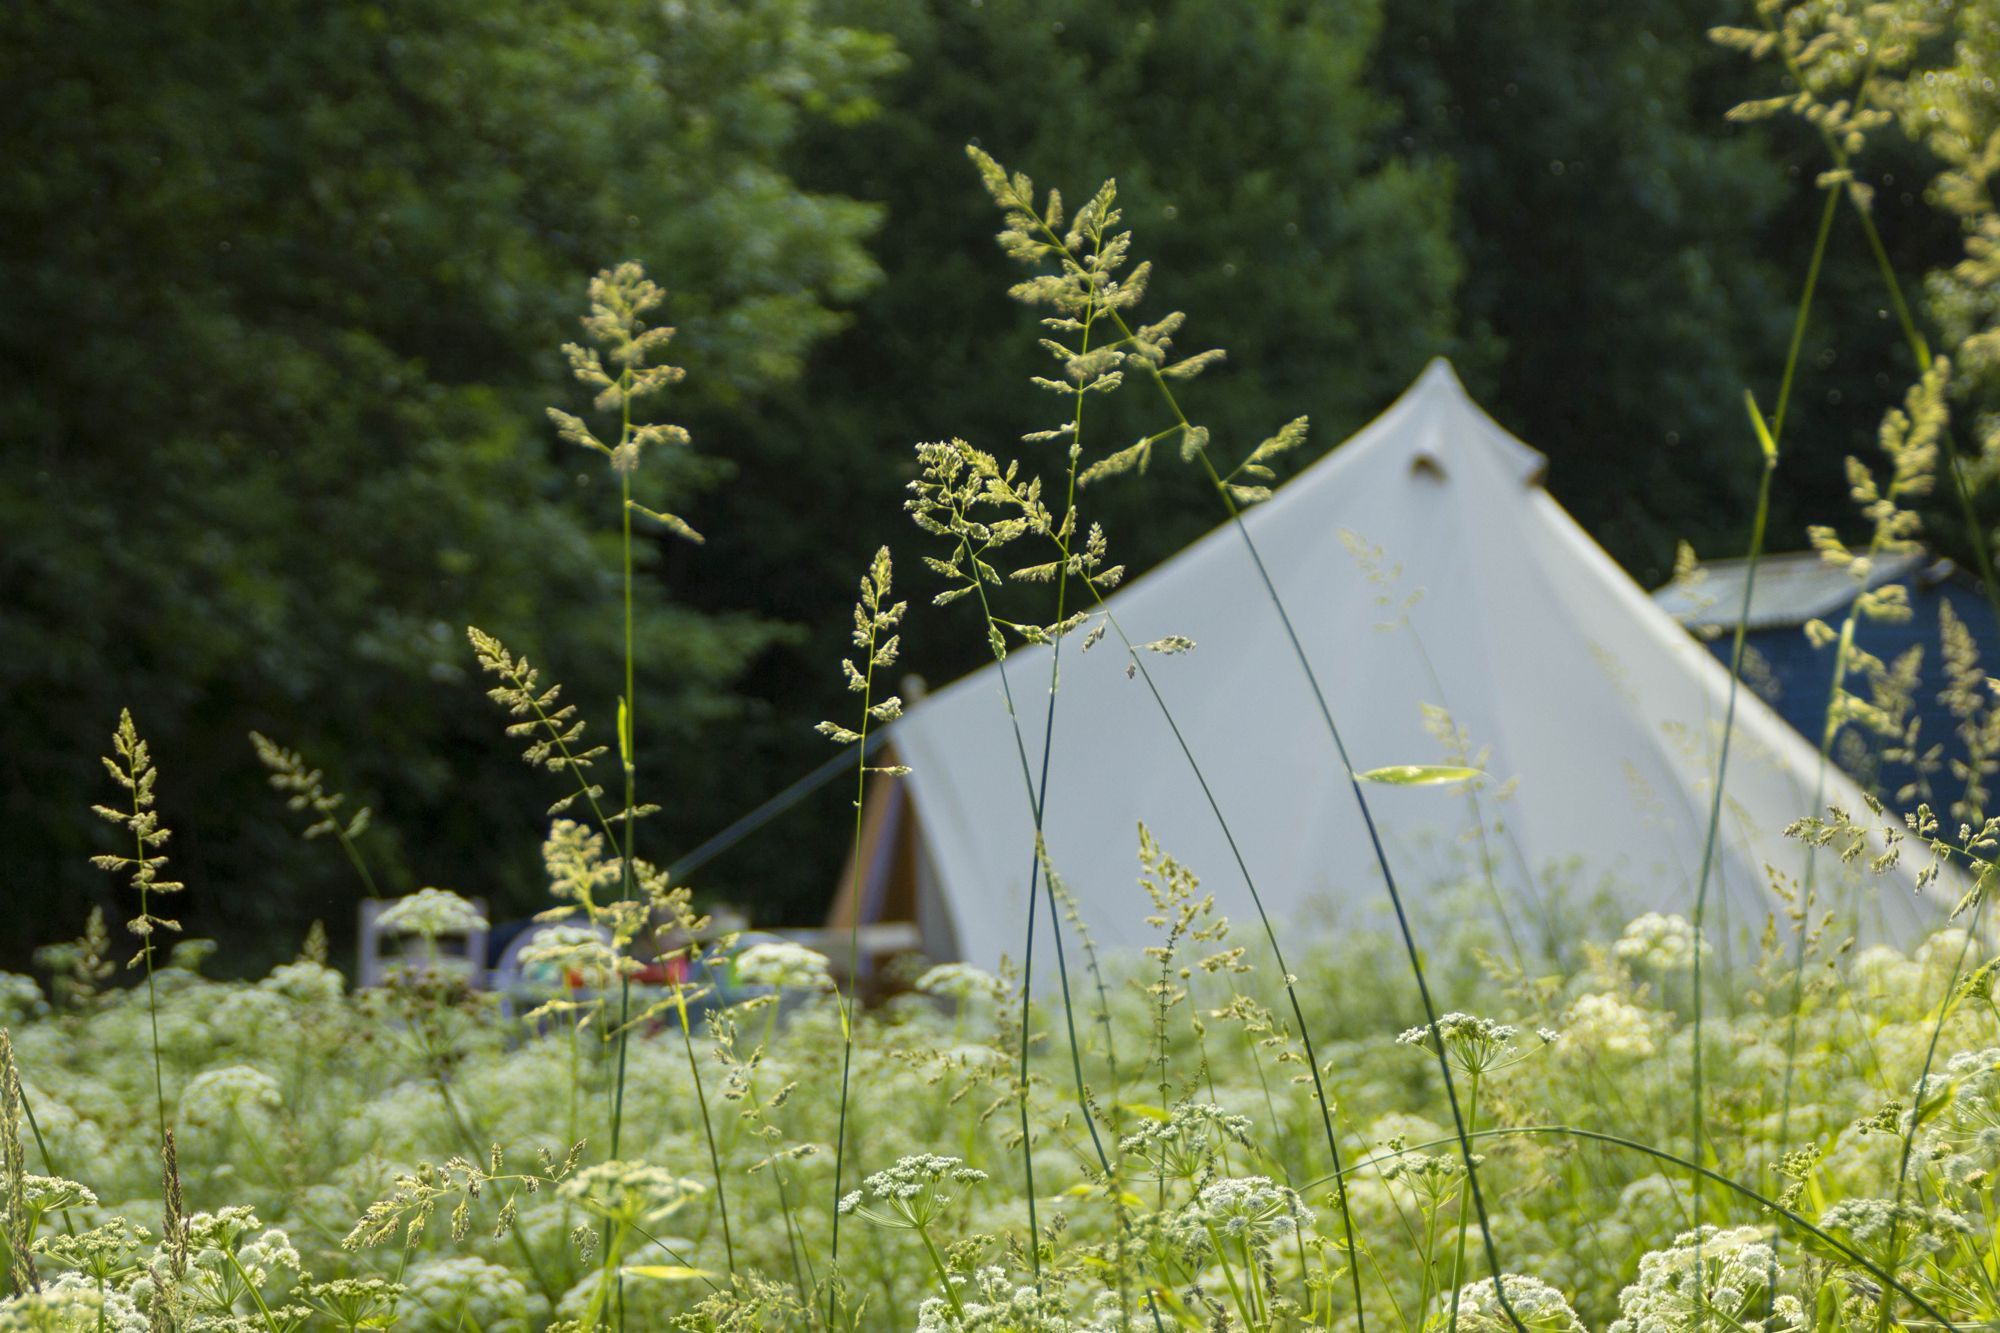 Bell Tent Glamping in Devon & Cornwall